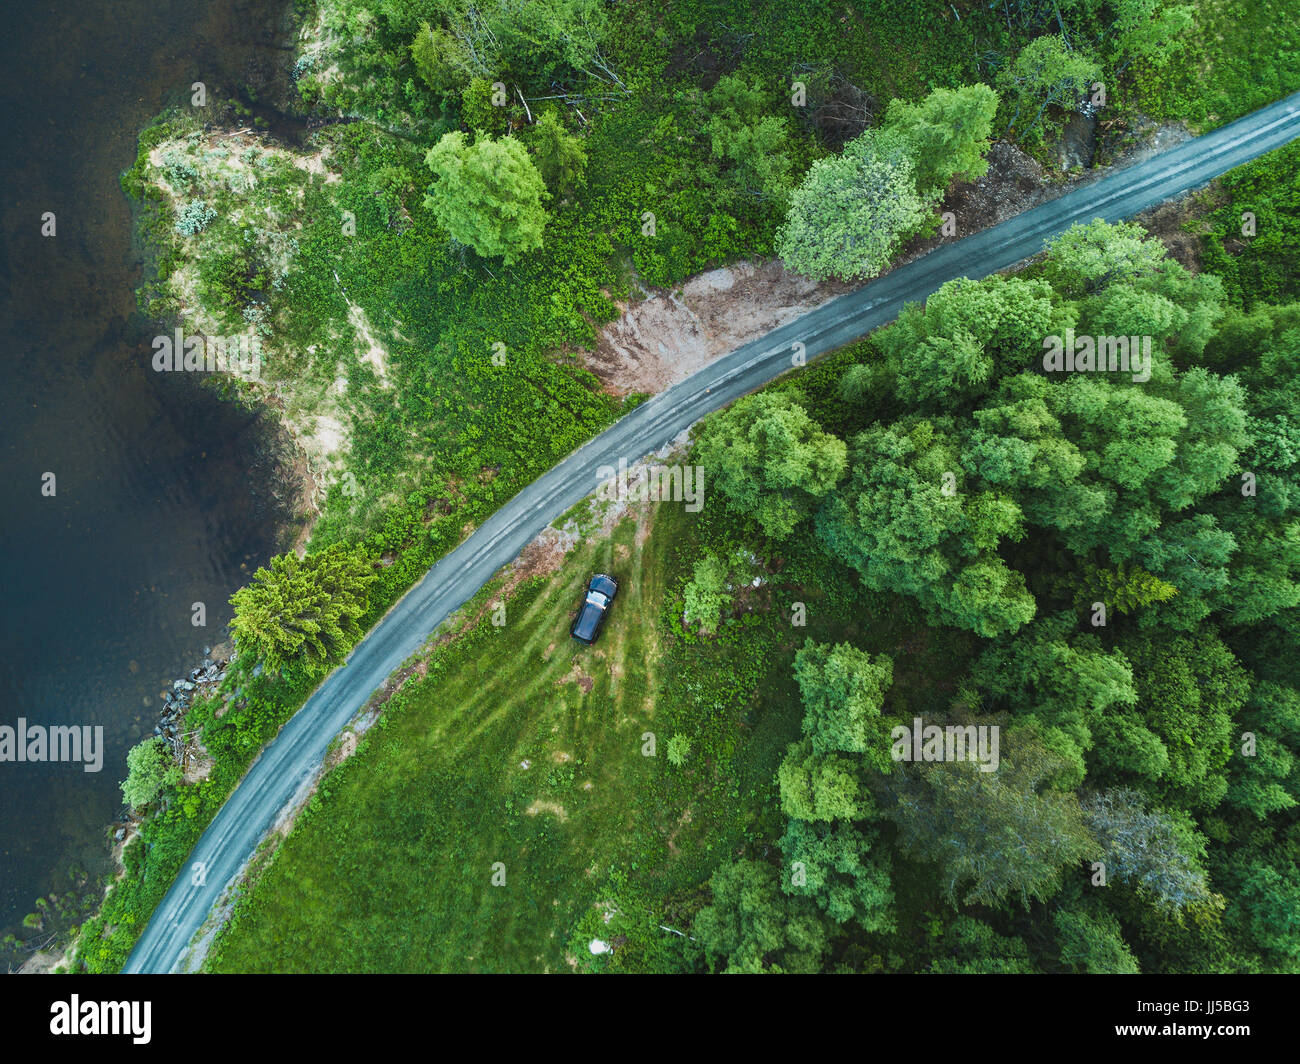 beautiful aerial view of countryside road in green forest, landscape from drone - Stock Image